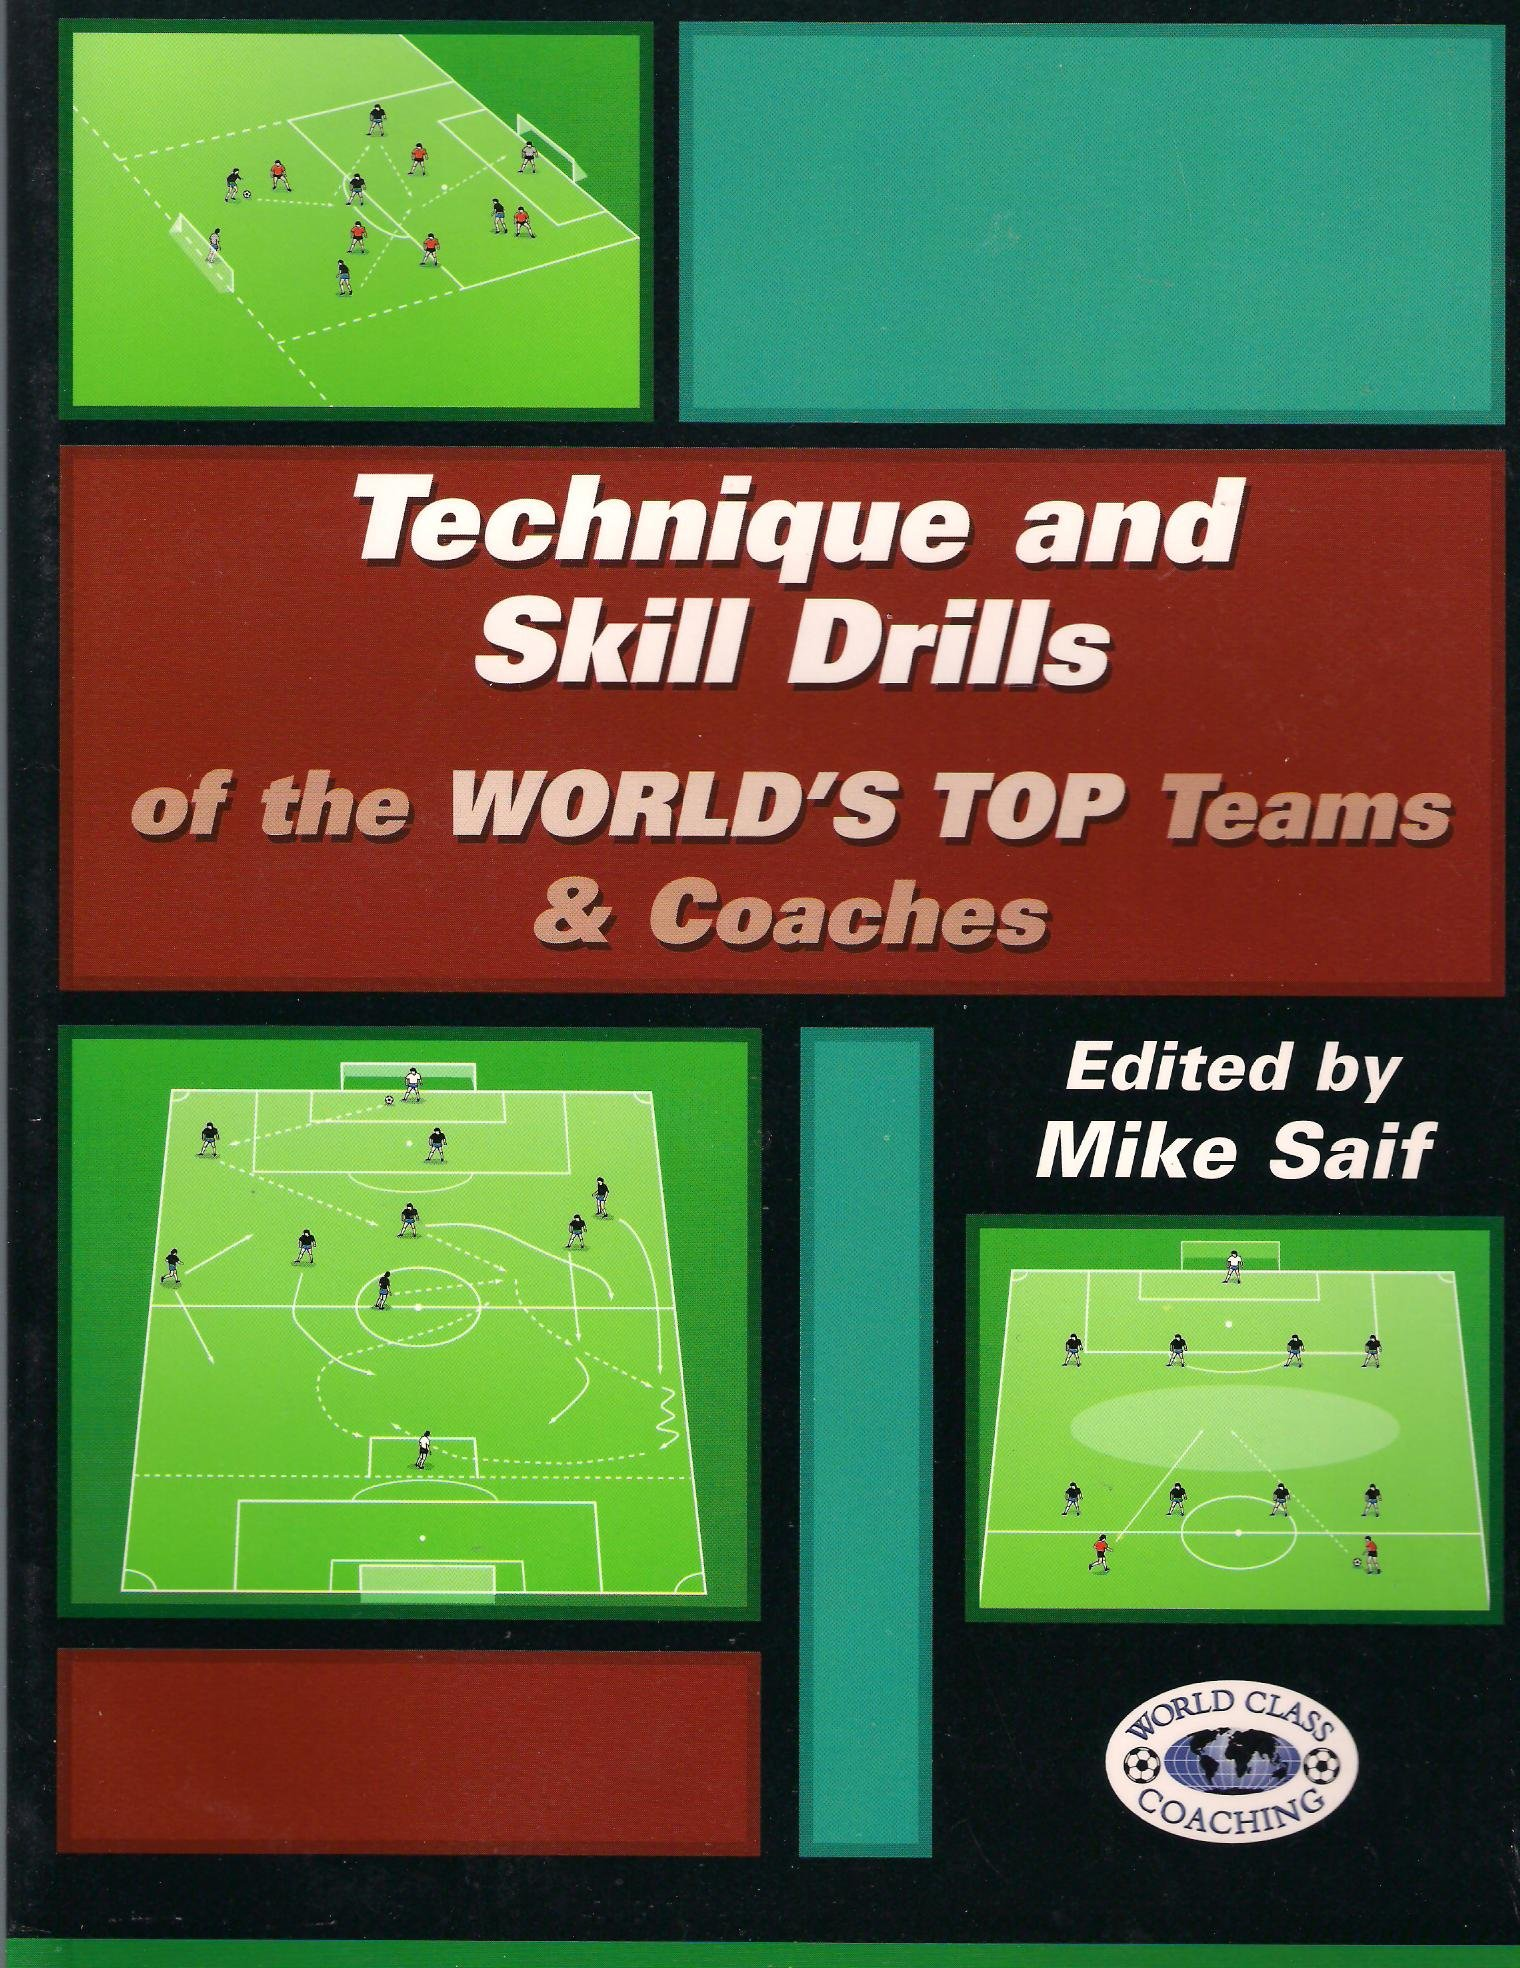 Technique and Skill Drills of the World's Top Teams & Coaches